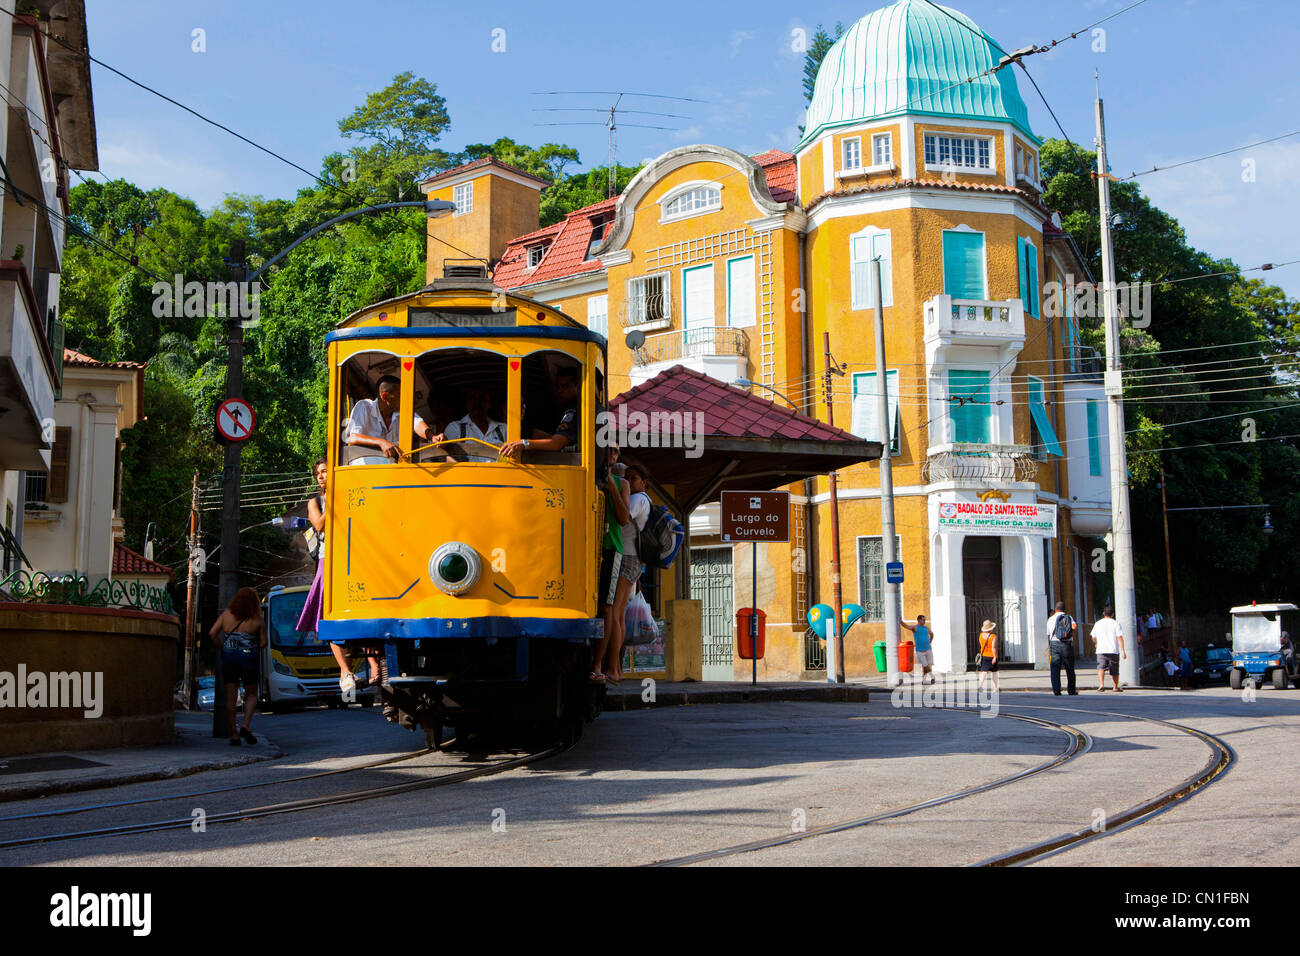 santa teresa tramway at largo do curvelo rio de janeiro brazil stock photo 47362553 alamy. Black Bedroom Furniture Sets. Home Design Ideas